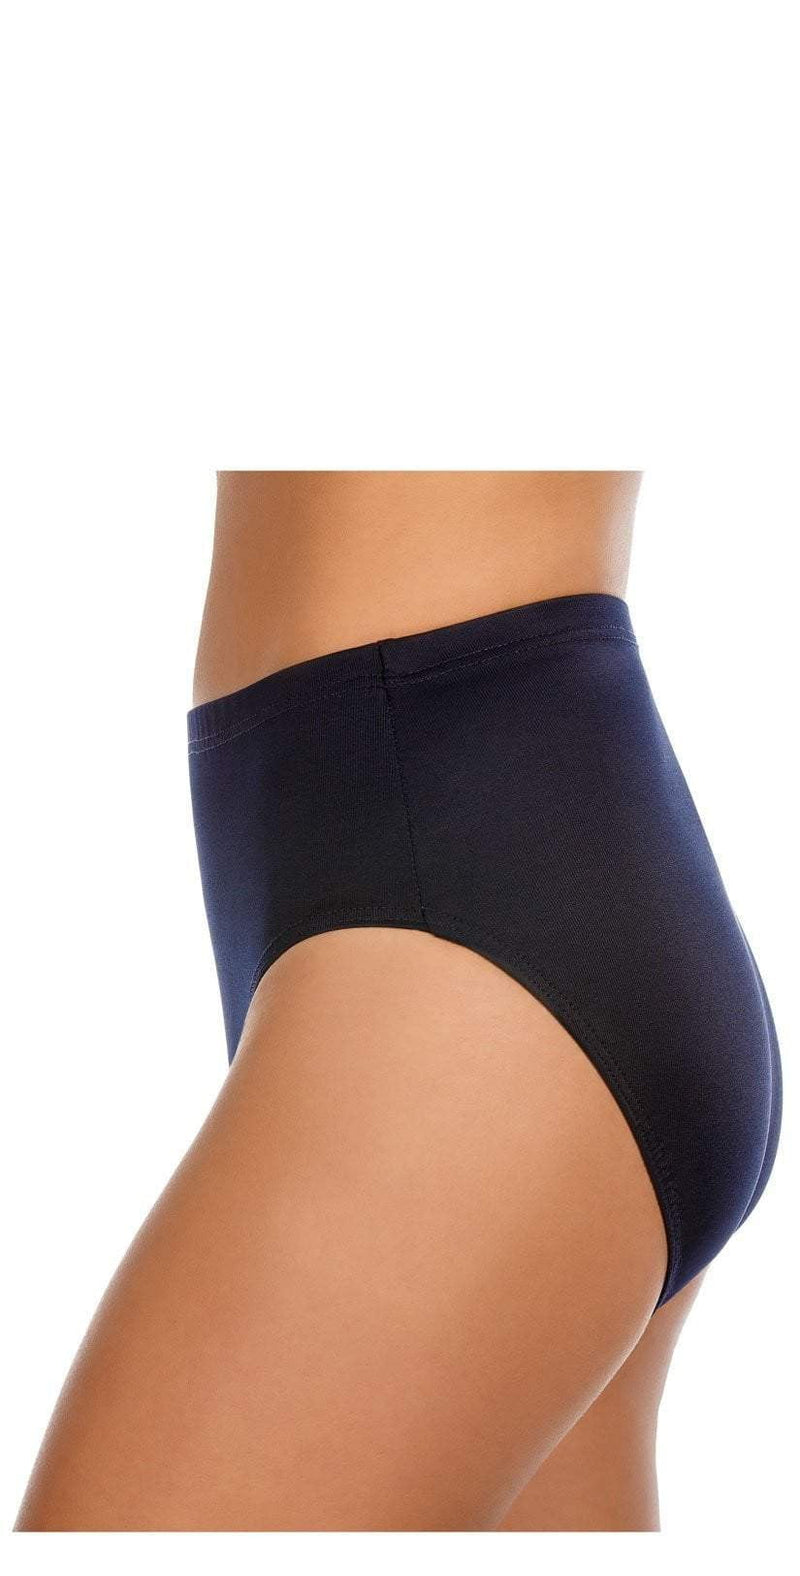 Miraclesuit Solid Midnight Blue Basic Pant Bikini Bottom 6516601 MDN: